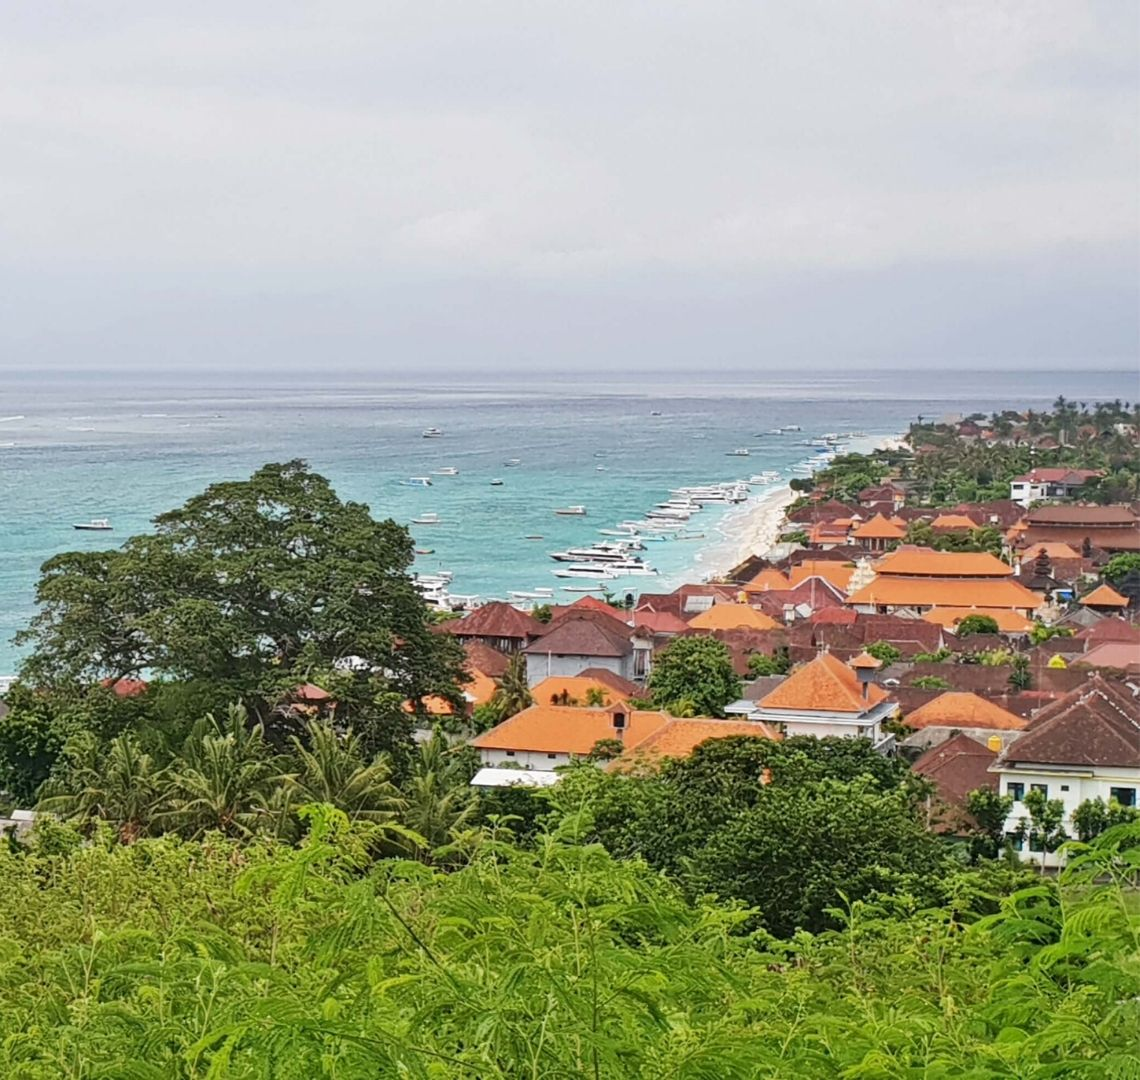 Best Secret Islands in Indonesia - the photo is taken from a hill. There are some ferns in the foreground and then lots of red and orange grooves of houses with white walls. Beyond that you can see the beach where there are lots of boats moored in the shallow turquoise water. As the water gets deeper it turns darker.